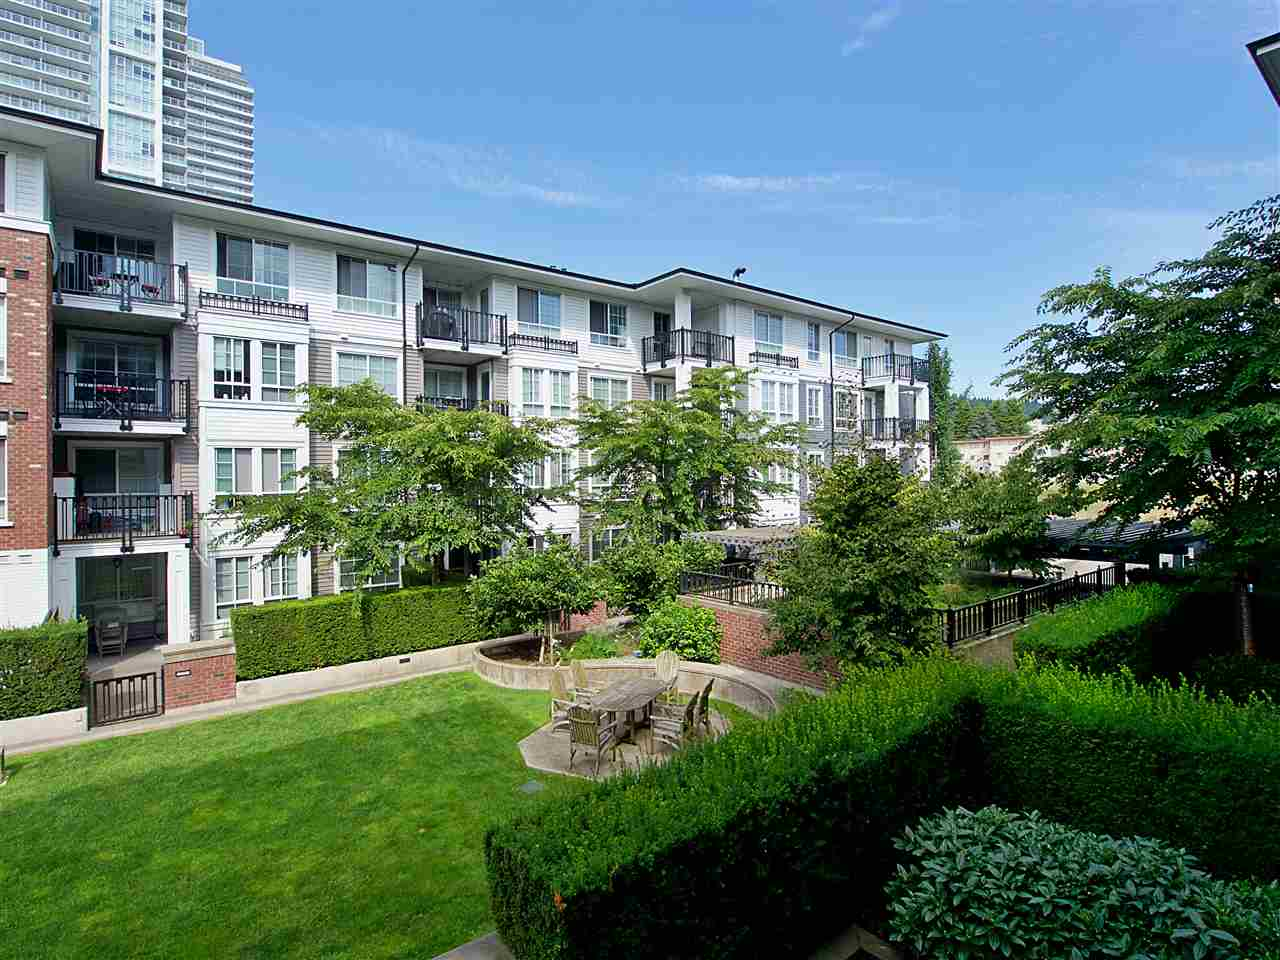 203 553 FOSTER AVENUE - Coquitlam West Apartment/Condo for sale, 2 Bedrooms (R2482138) - #28